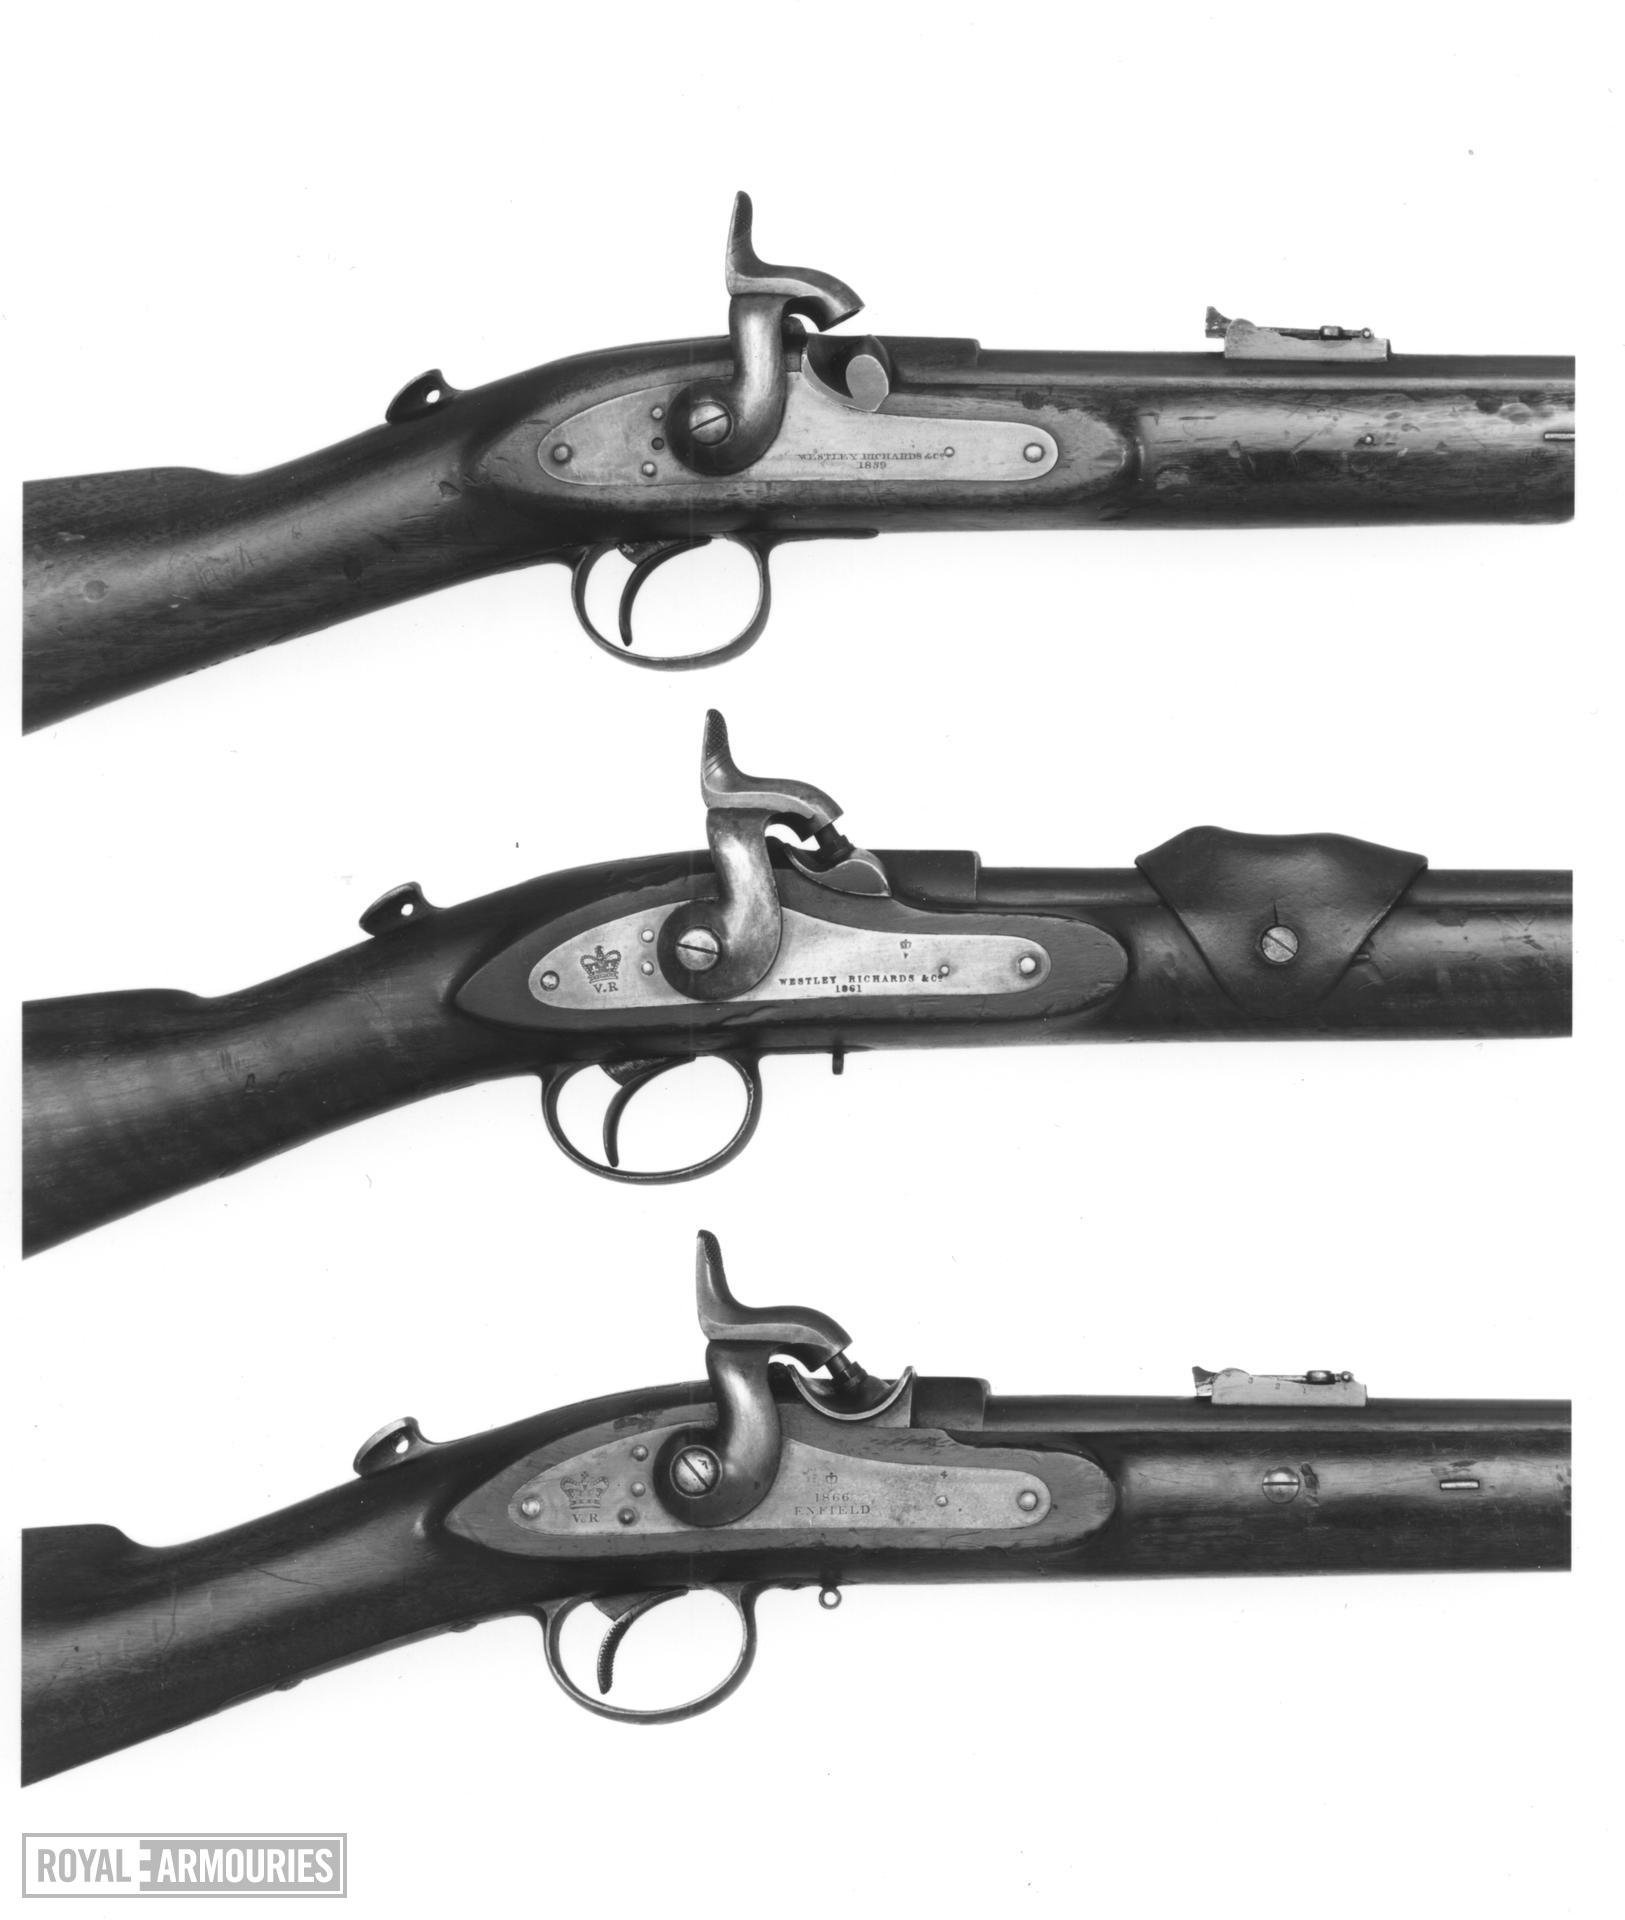 Percussion breech-loading cavalry carbine - Model 1861 Westley Richard's pattern